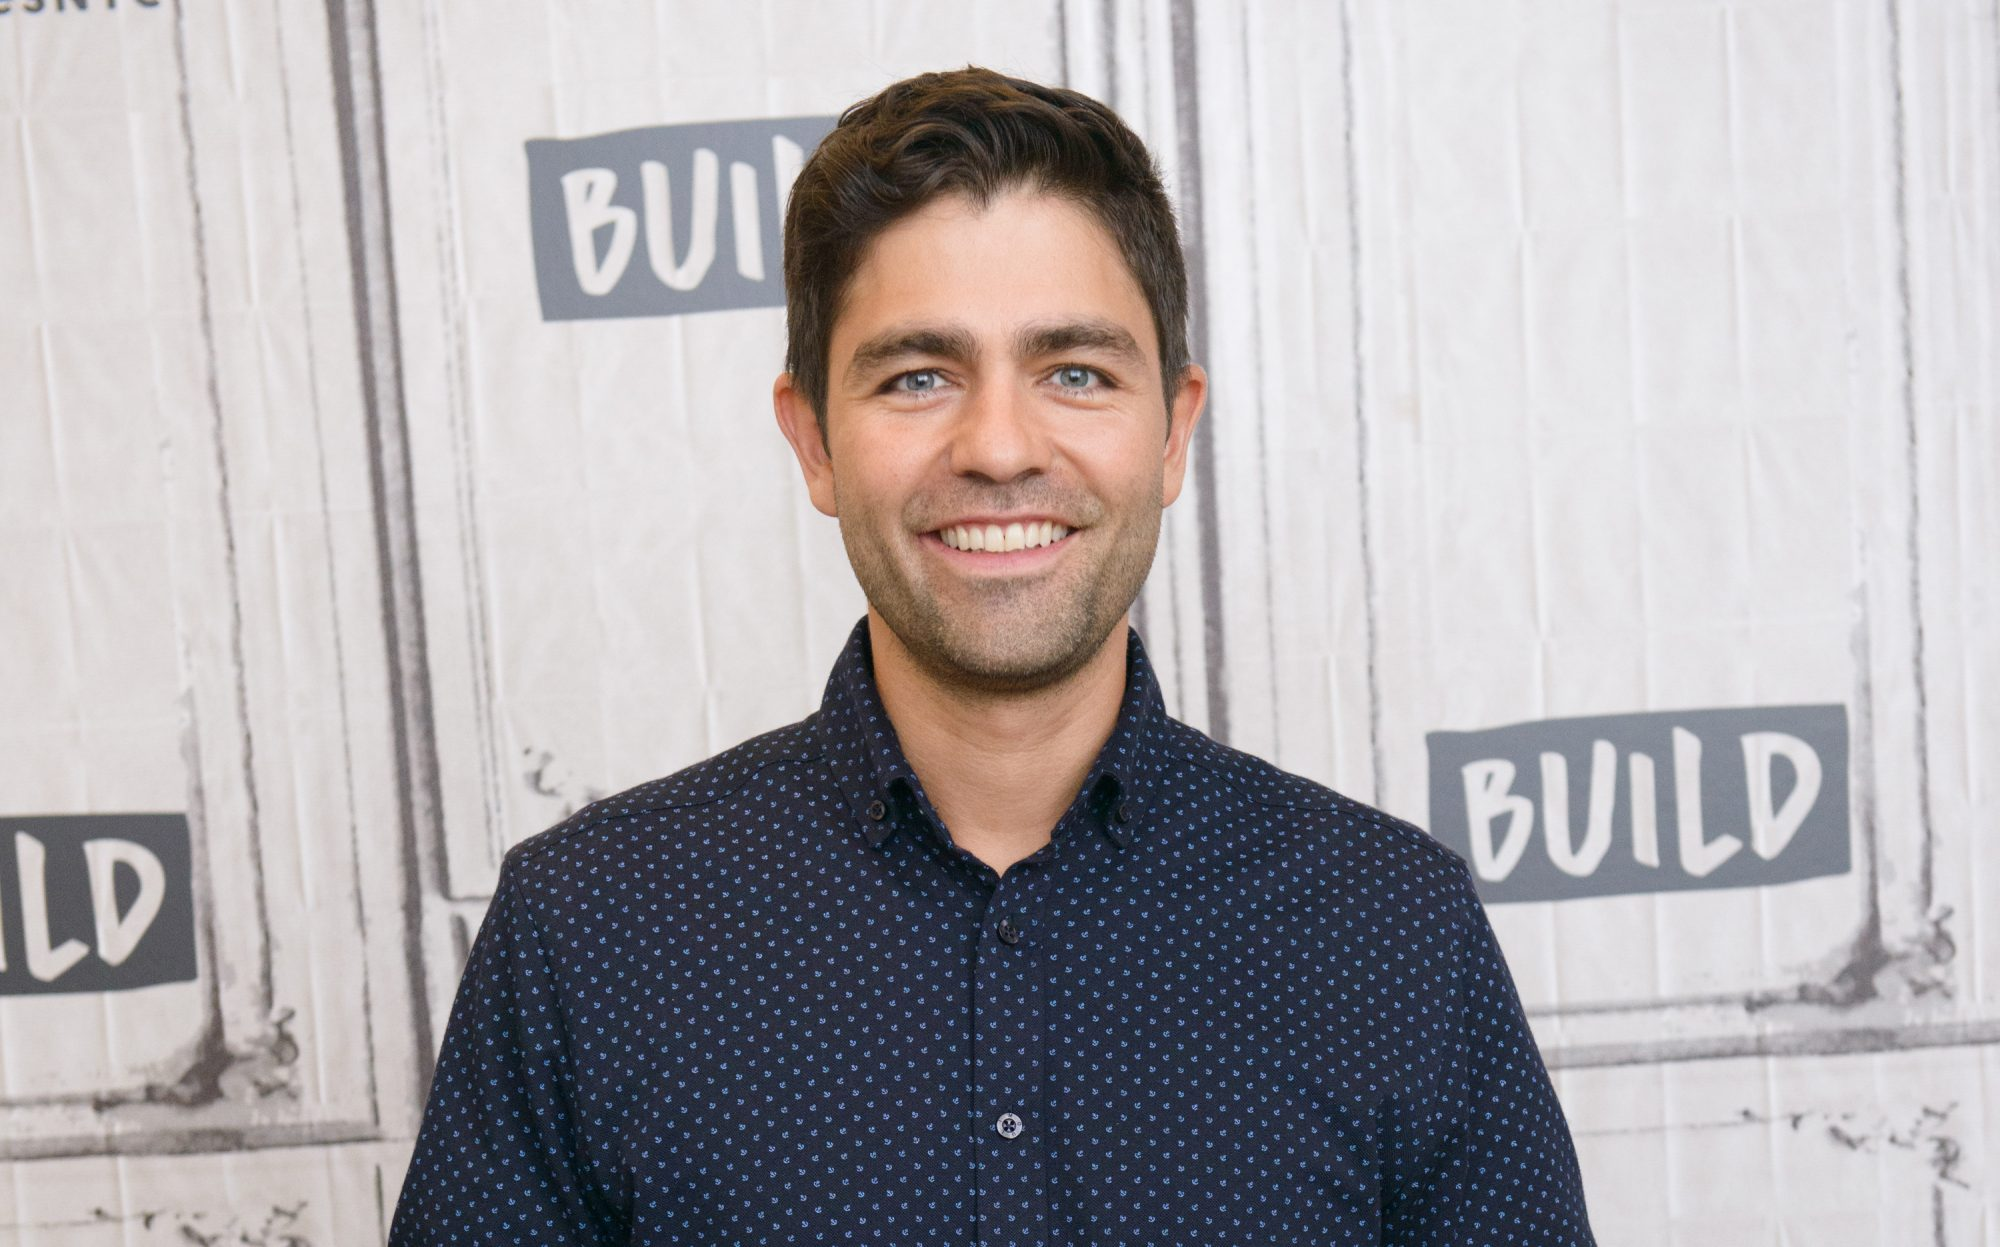 Build Presents Adrian Grenier Discussing His Nonprofit Organization Lonely Whale Foundation